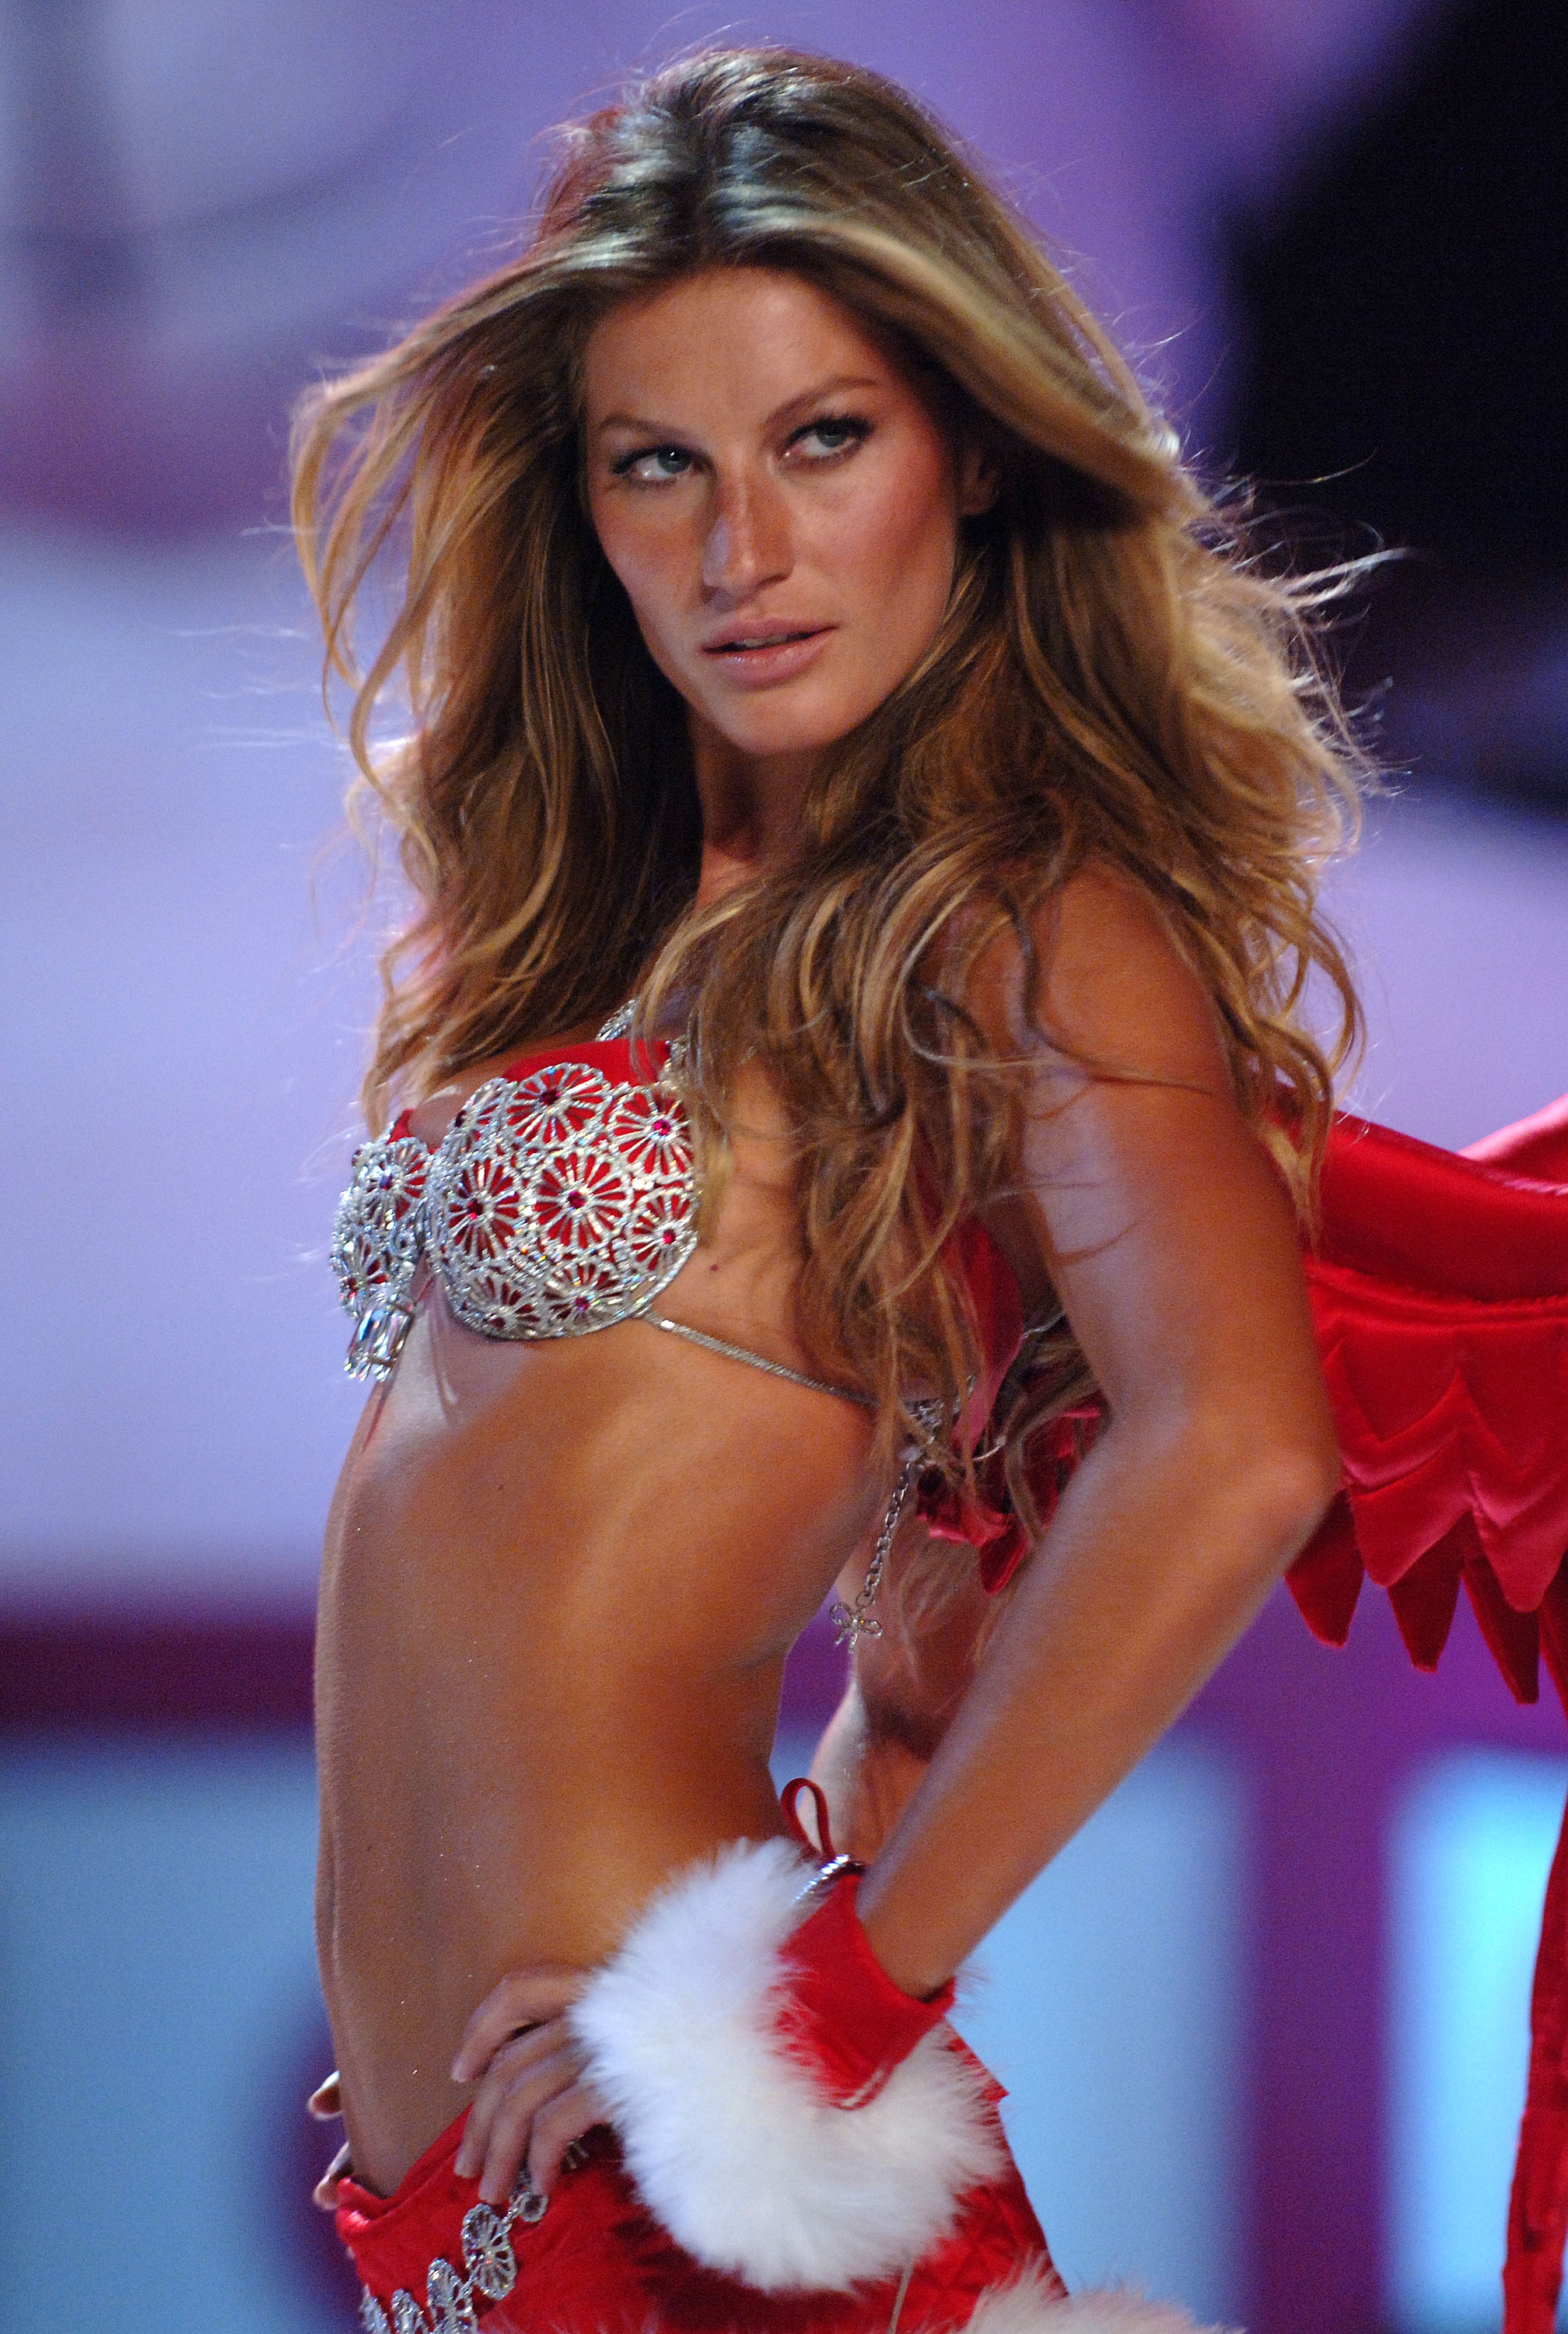 NEW YORK - NOVEMBER 09:  Model Gisele Bundchen walks the runway at The Victoria's Secret Fashion Show at the 69th Regiment Armory November 9, 2005 in New York City.  (Photo by Bryan Bedder/Getty Images)